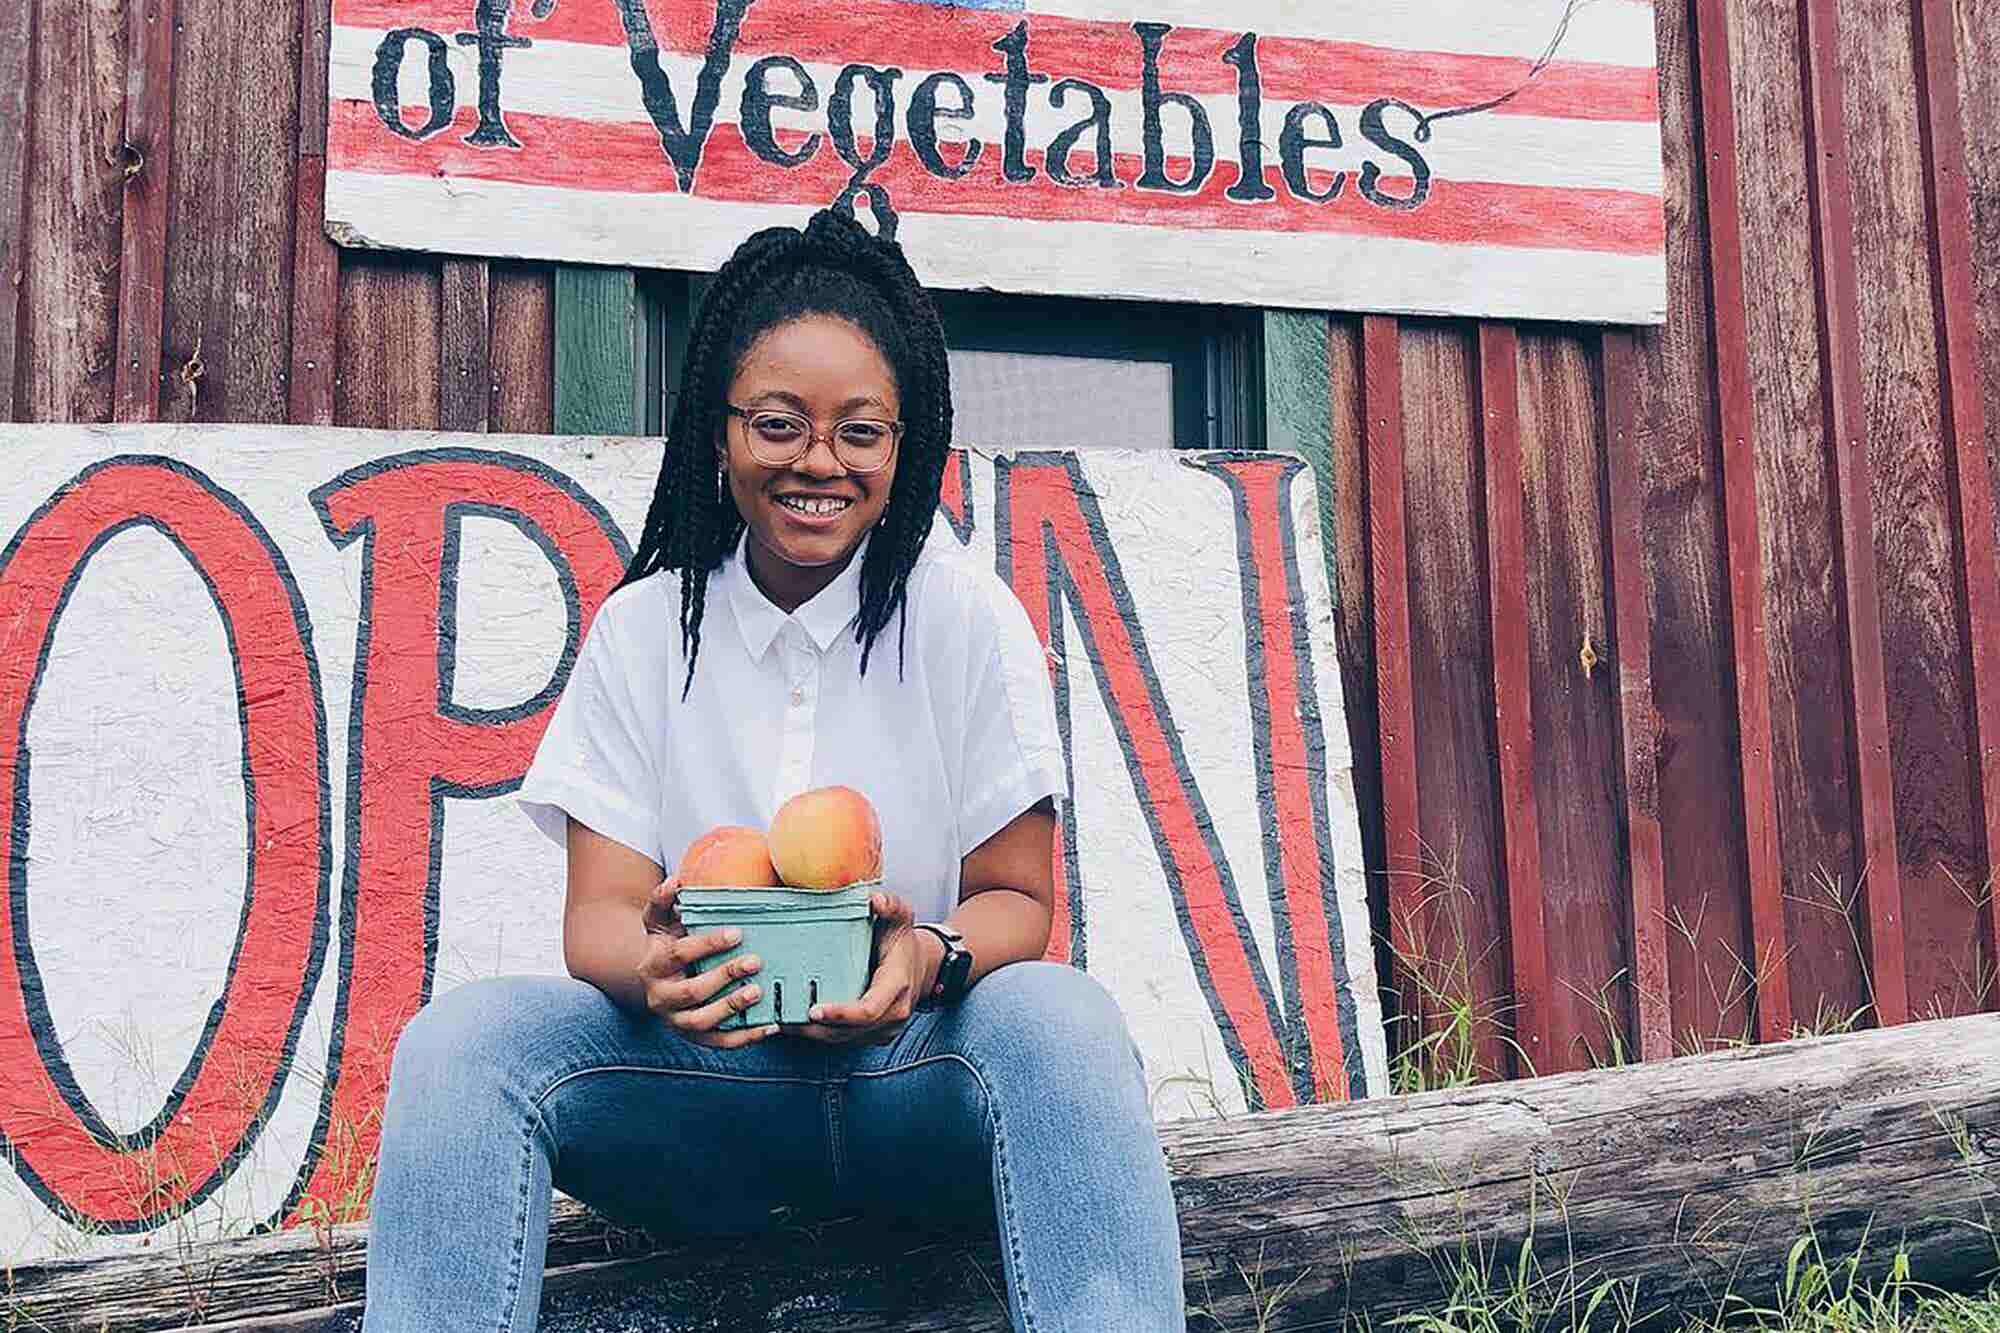 (Podcast) How This Amazing Teen Entrepreneur Balances Her Nonprofit, Speaking Engagements and Writing a Book